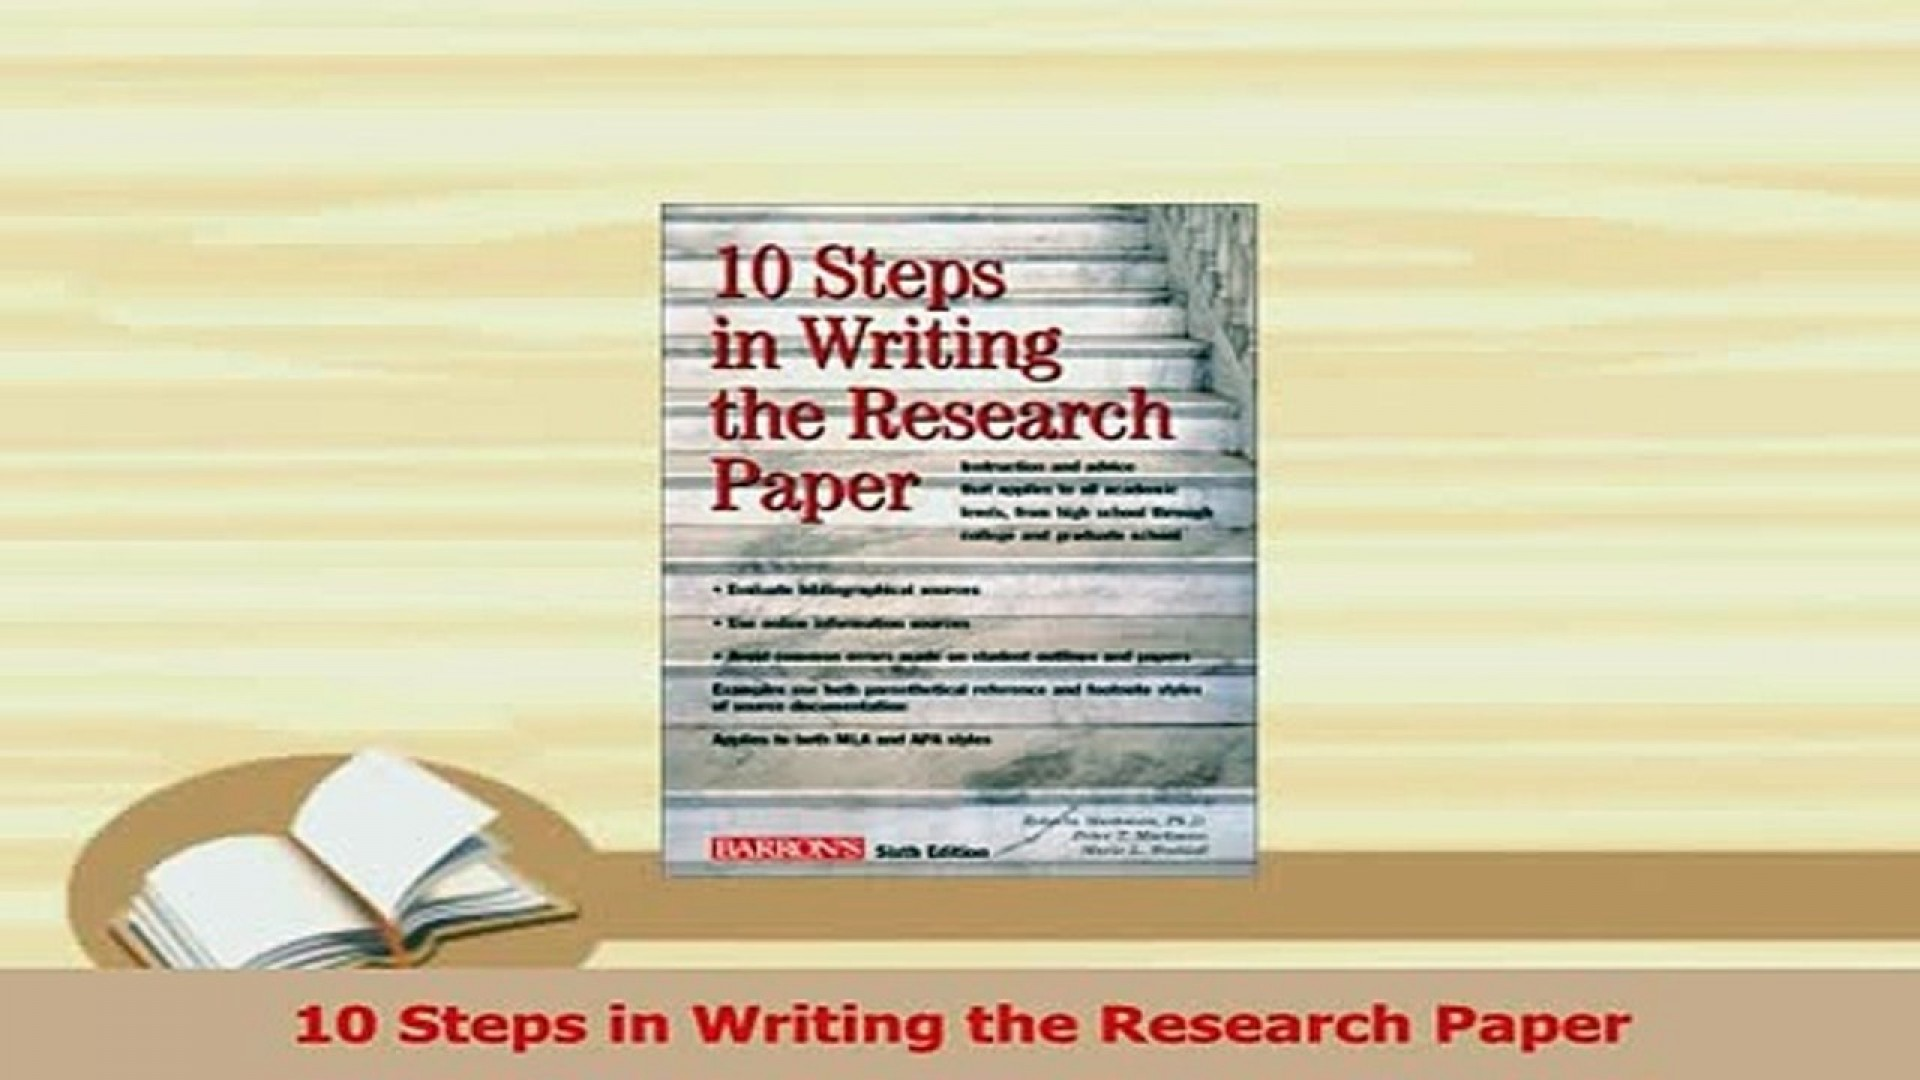 013 Steps To Write Basic Research Paper X720 Tl  Unbelievable 10 A Writing Ppt How Pdf1920